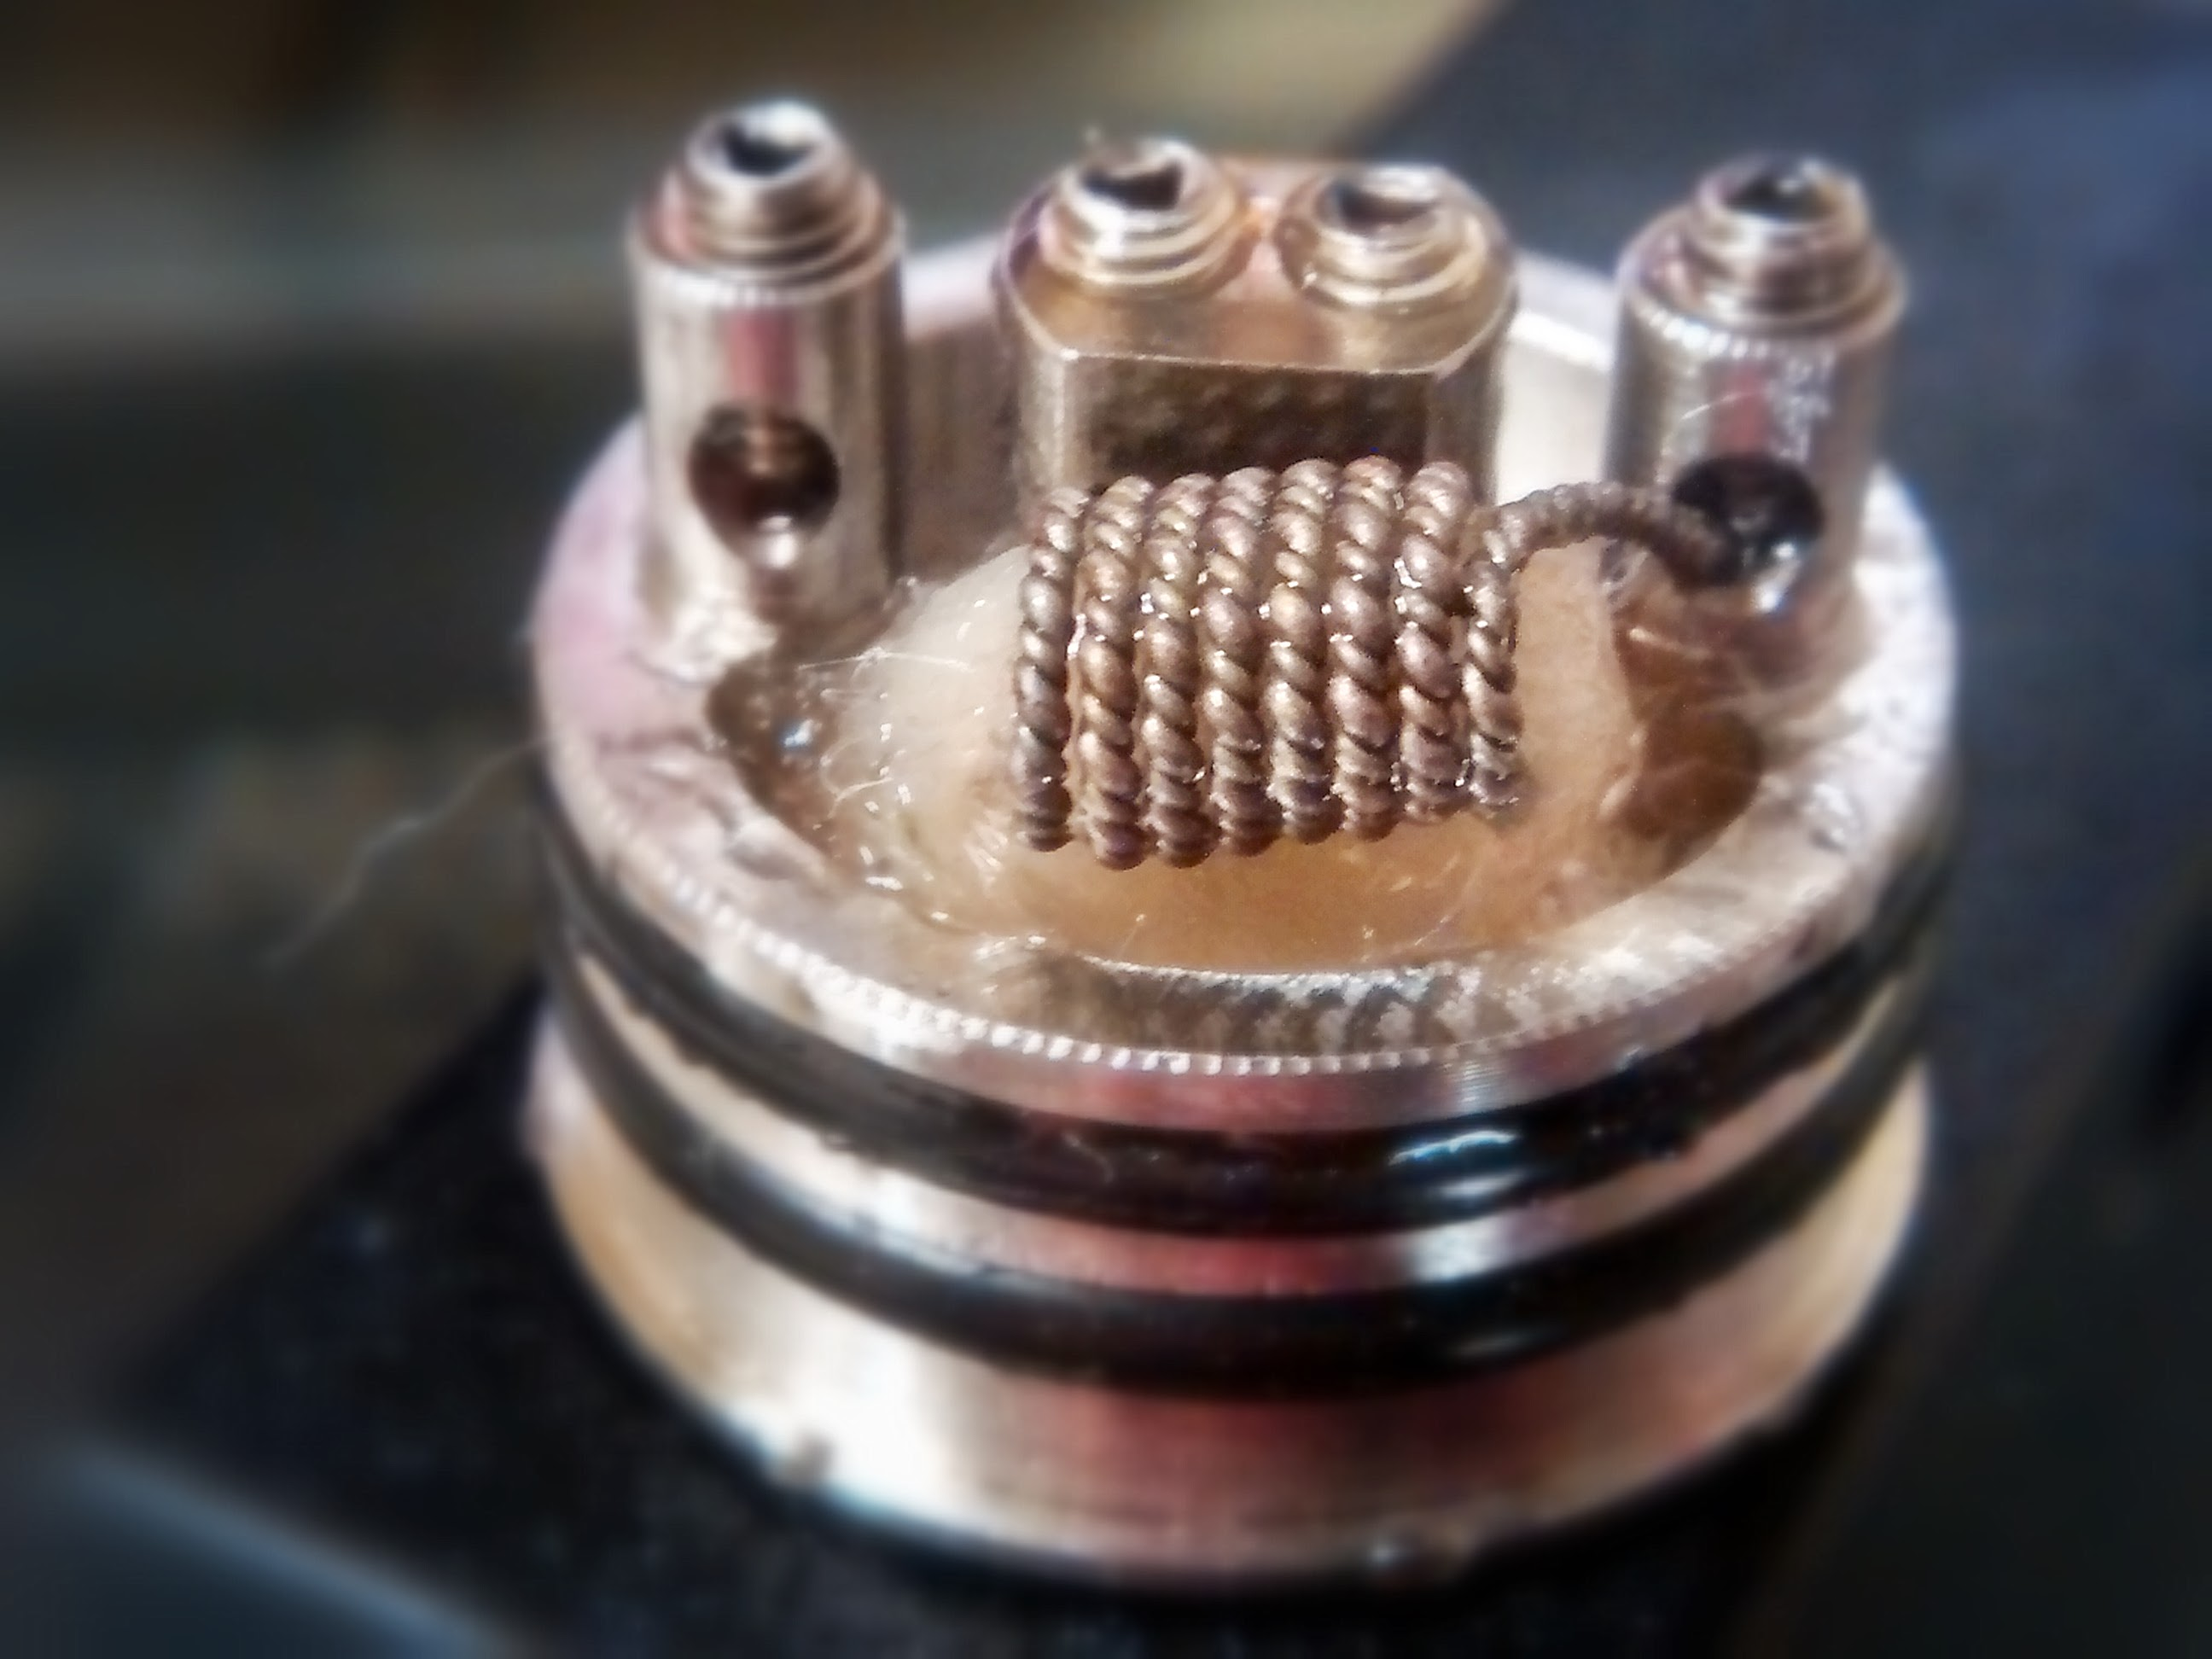 How To Change An E Cig Coil